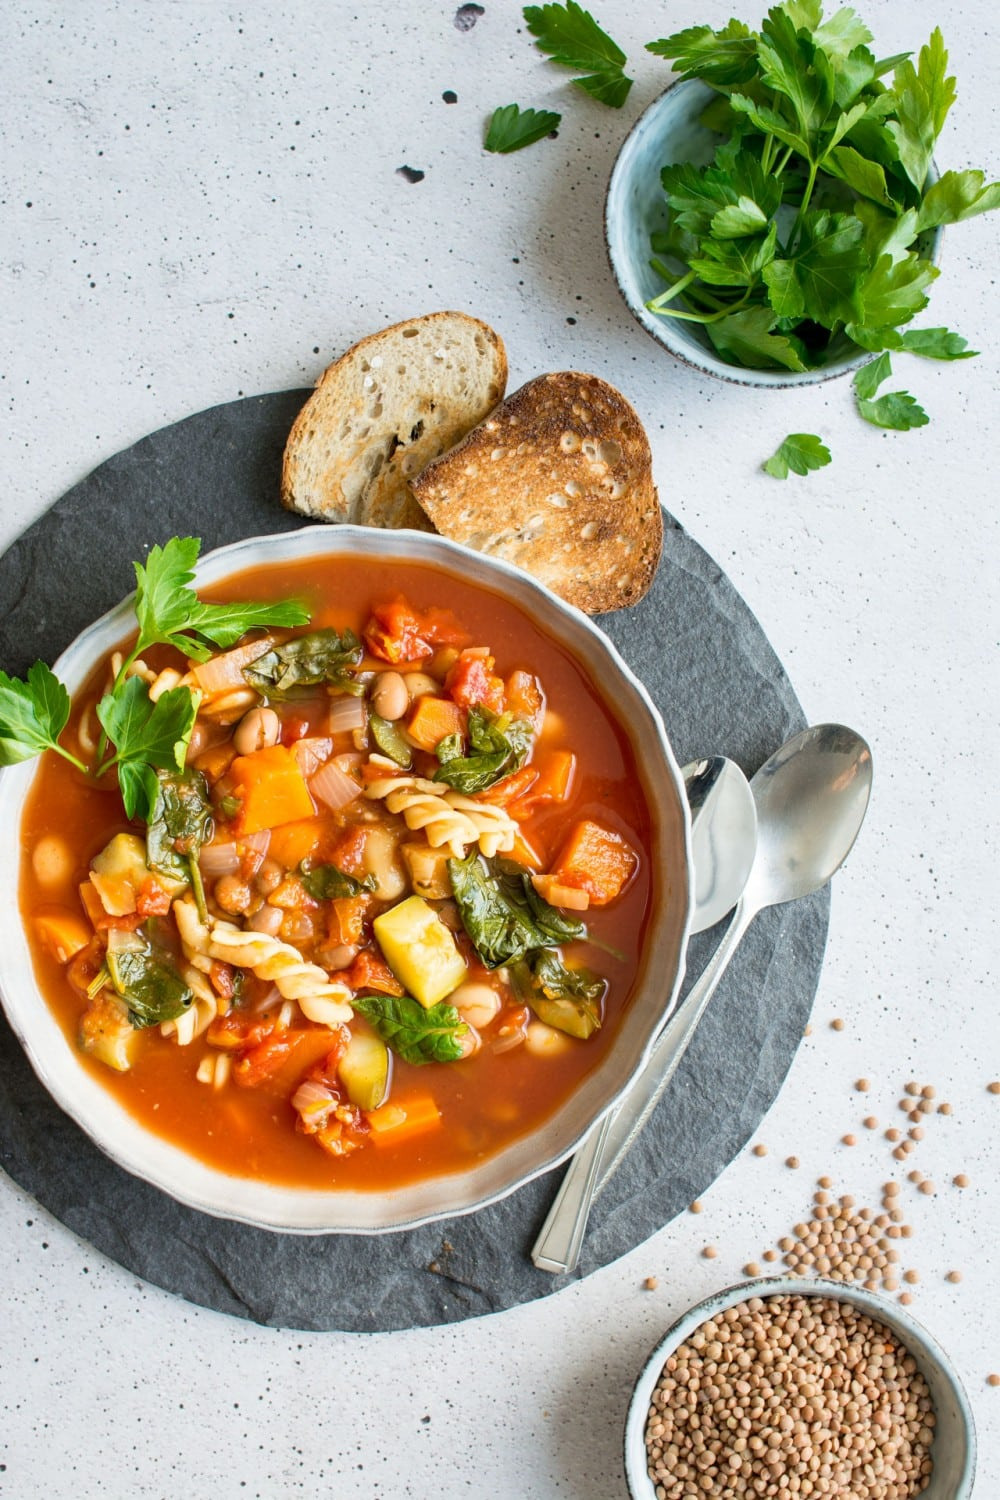 15 Delicious Minestrone Soup Recipes: Winter Vegetable Minestrone Soup